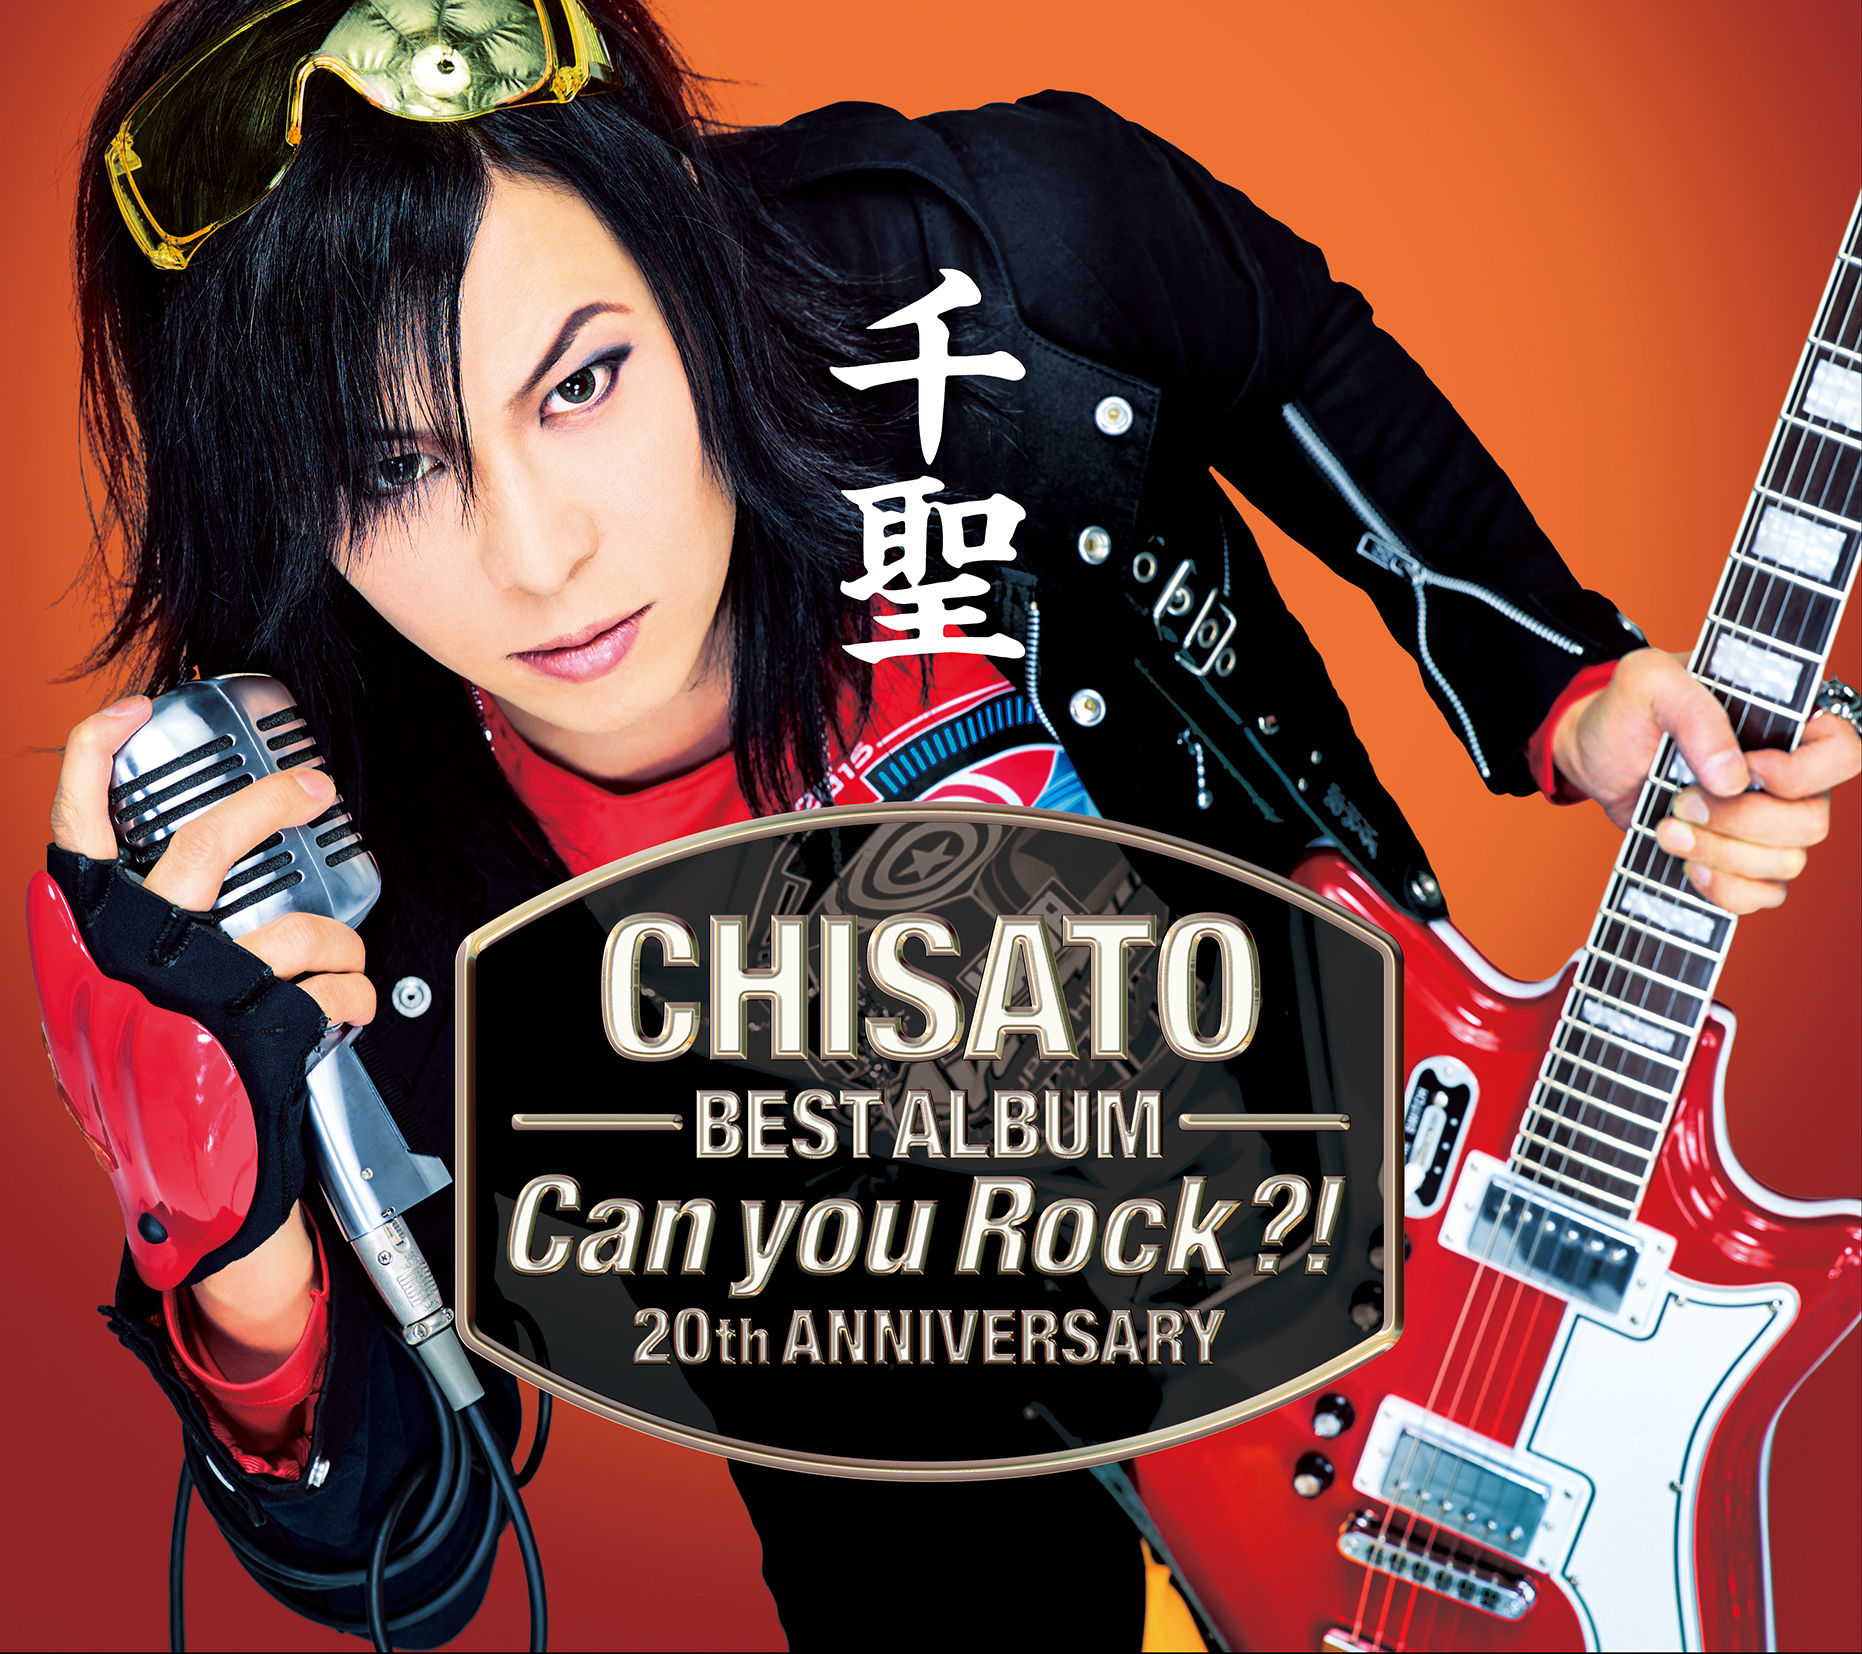 千聖~CHISATO~ 20th ANNIVERSARY BEST ALBUM「Can you Rock?!」初回限定盤